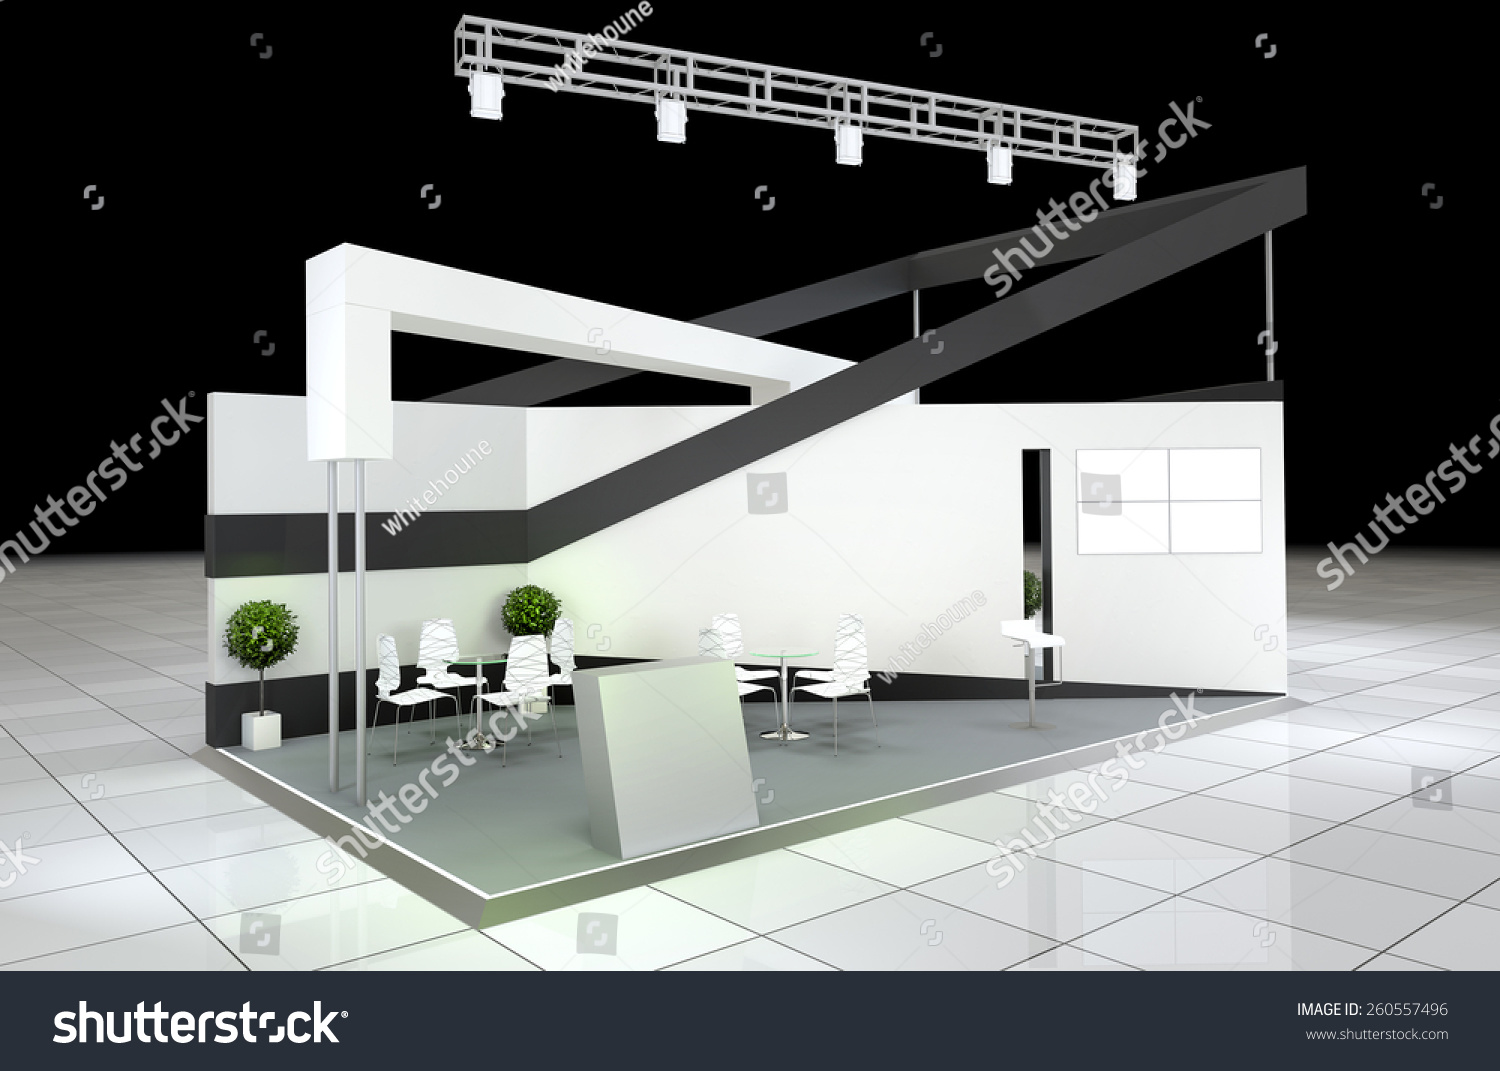 Modern Exhibition Stand Design : Modern design abstract exhibition stand stock illustration